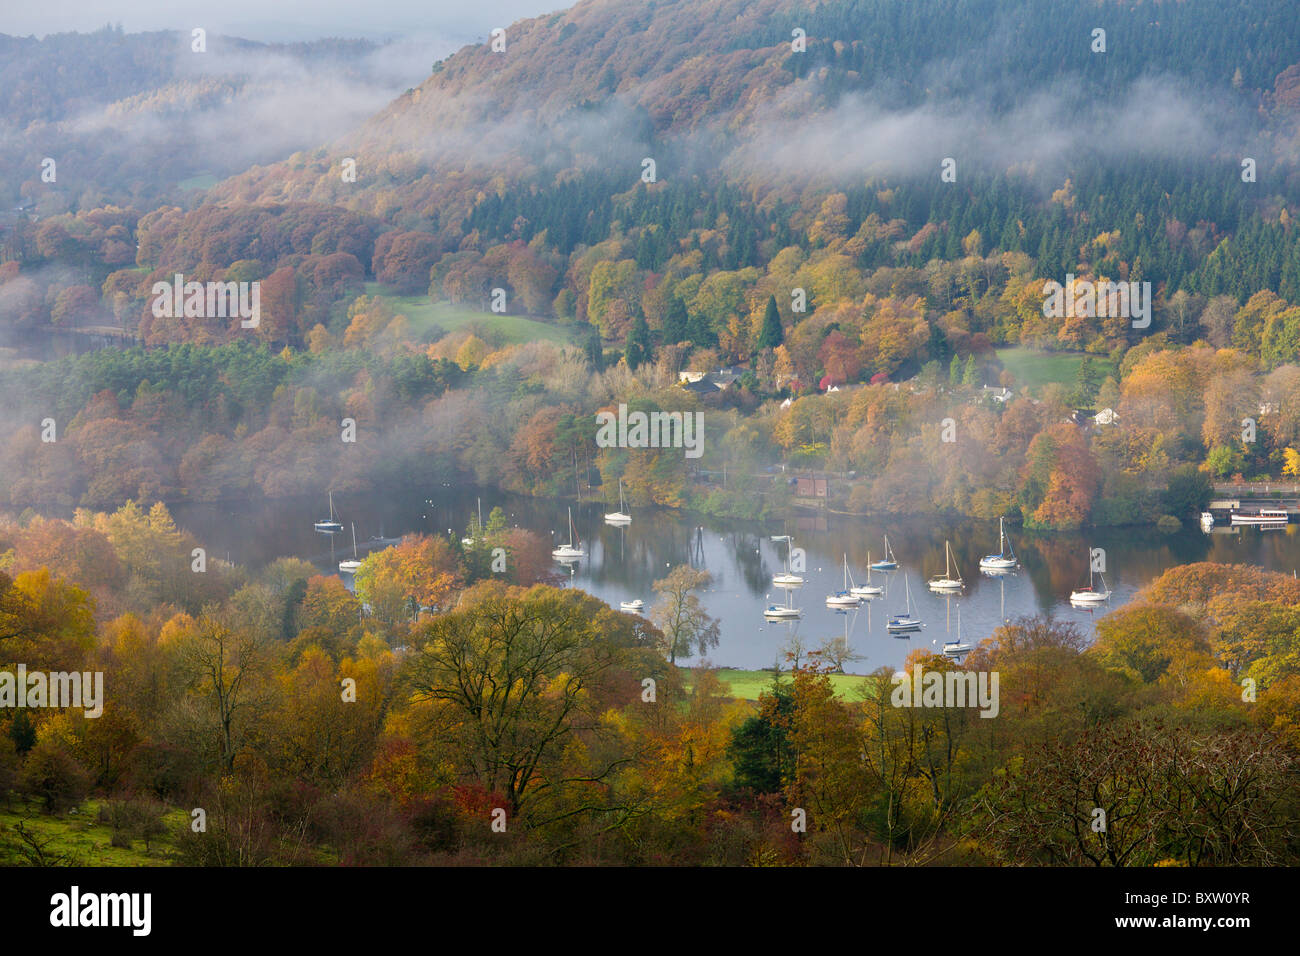 Fell Foot Park in the Autumn, Lake Windermere, Cumbria, England - Stock Image